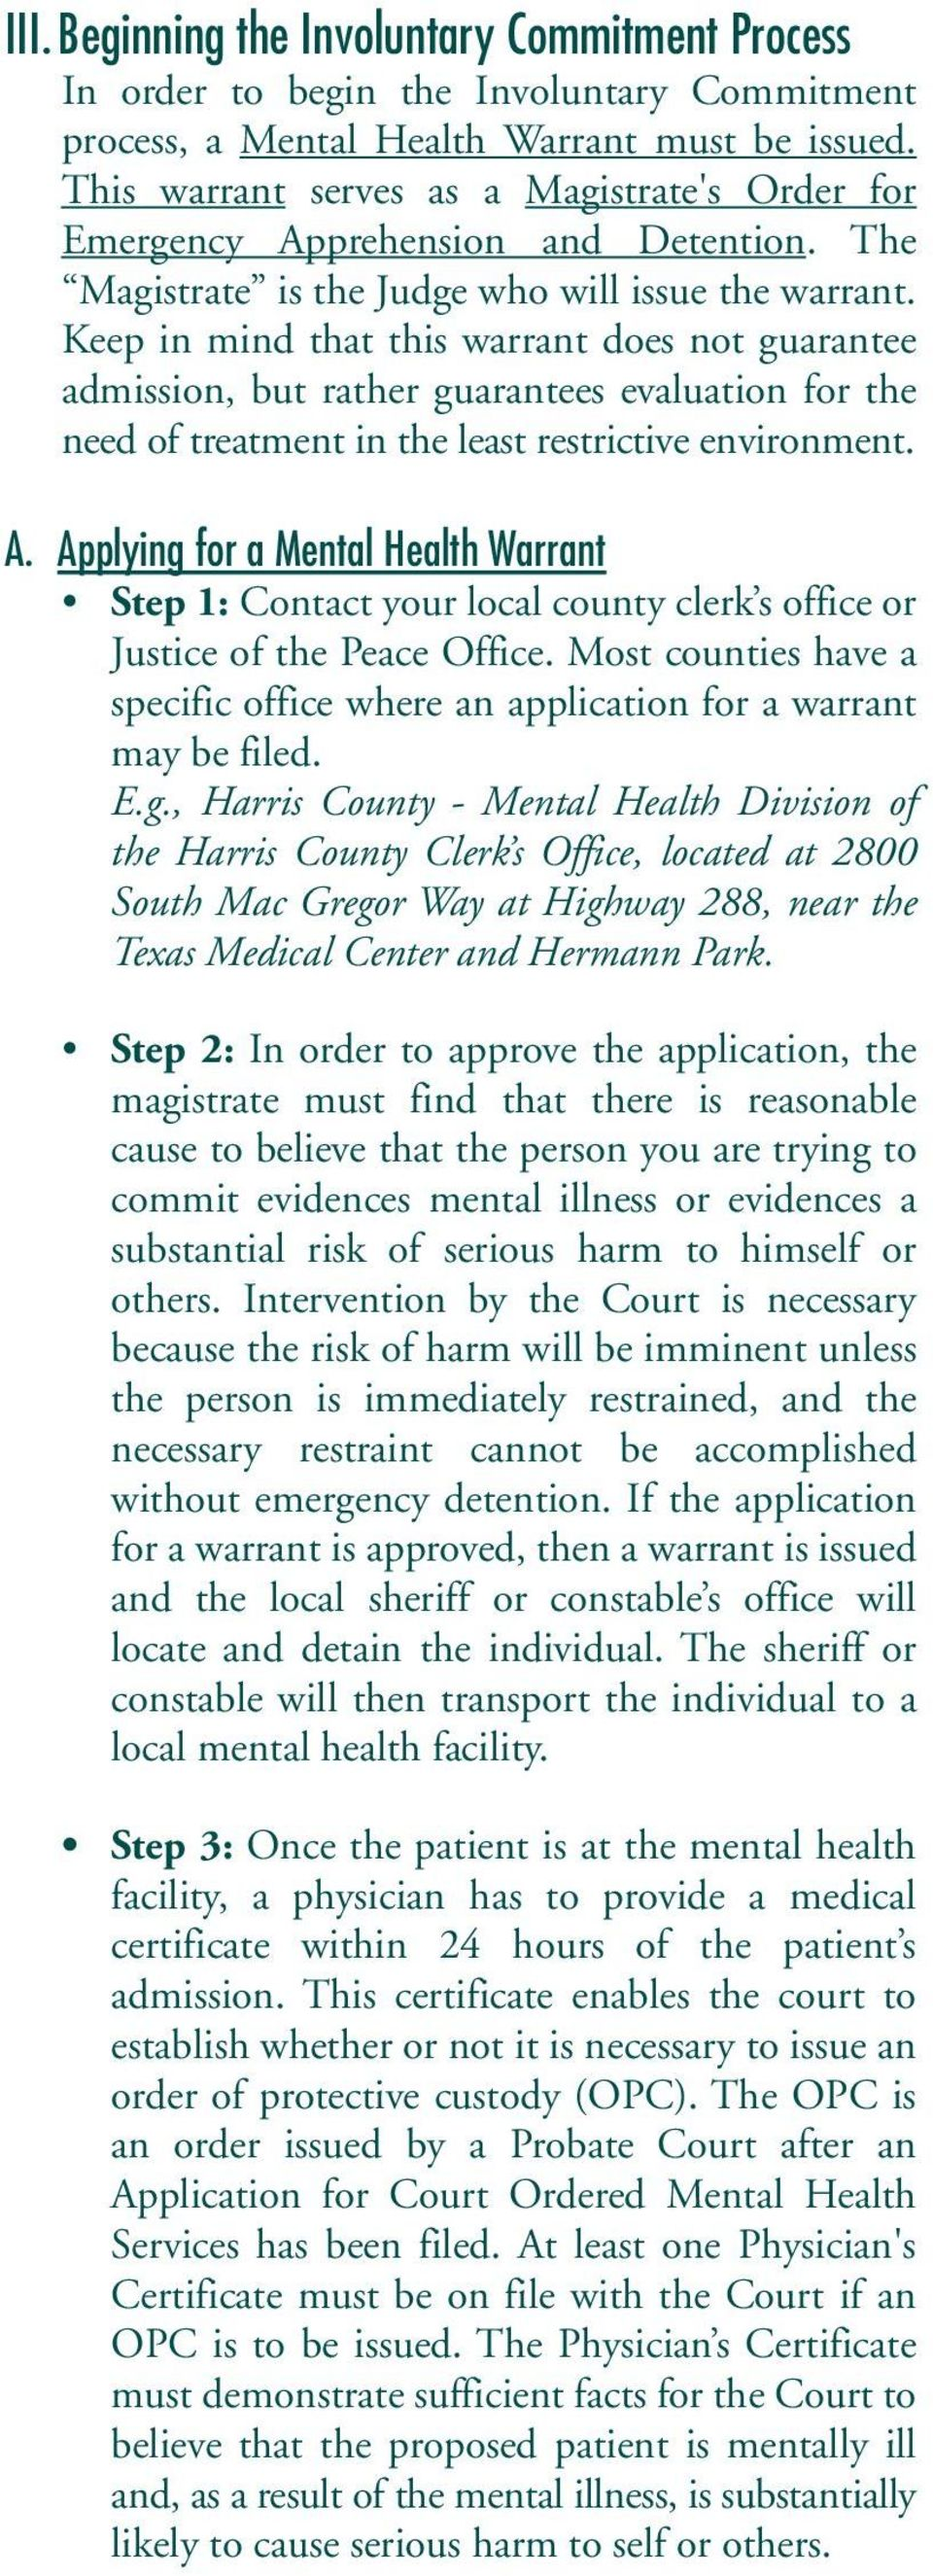 Keep in mind that this warrant does not guarantee admission, but rather guarantees evaluation for the need of treatment in the least restrictive environment. A.